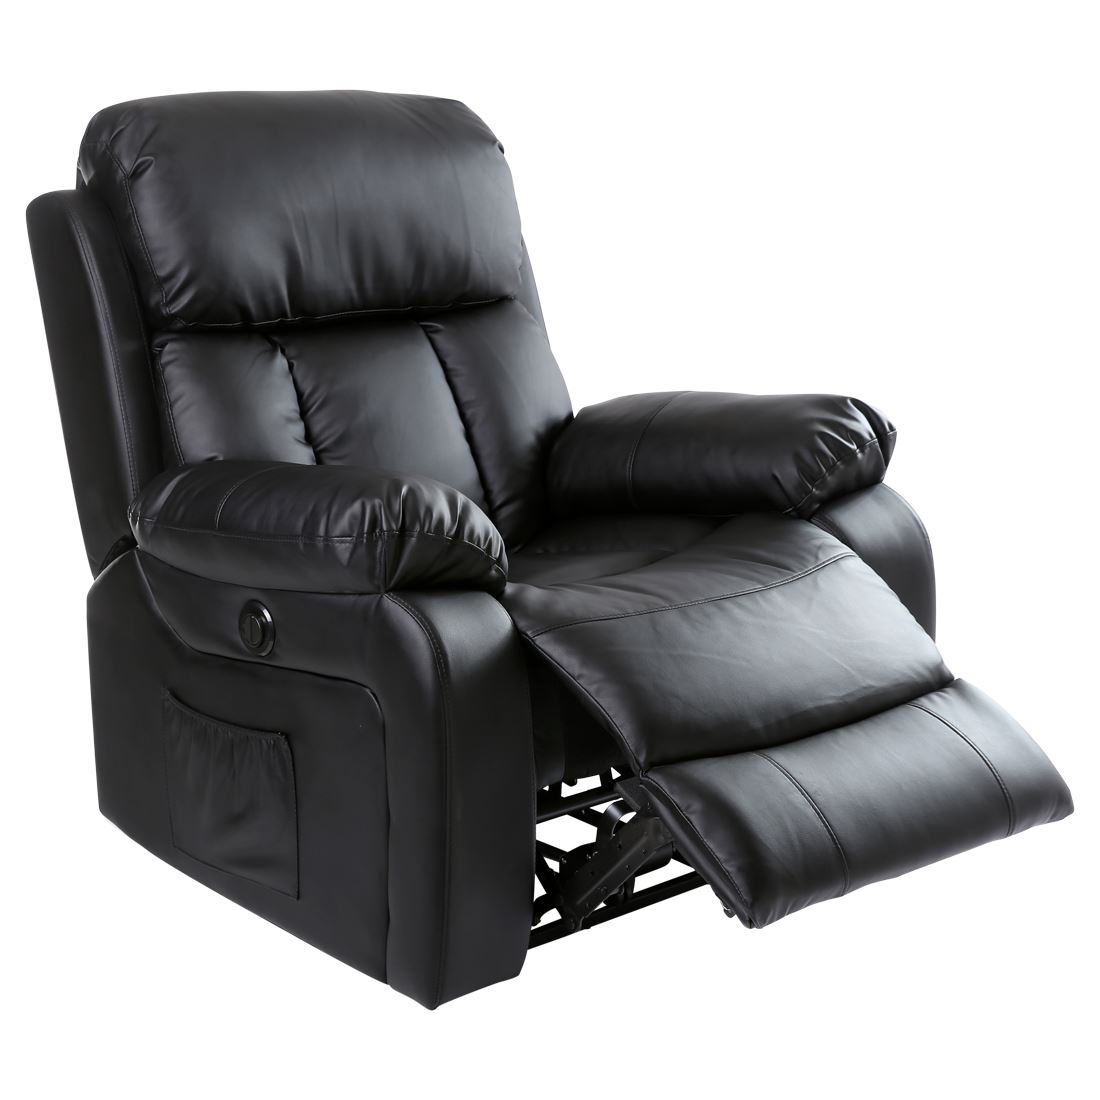 massage gaming chair outdoor swing replacement covers chester electric heated leather recliner